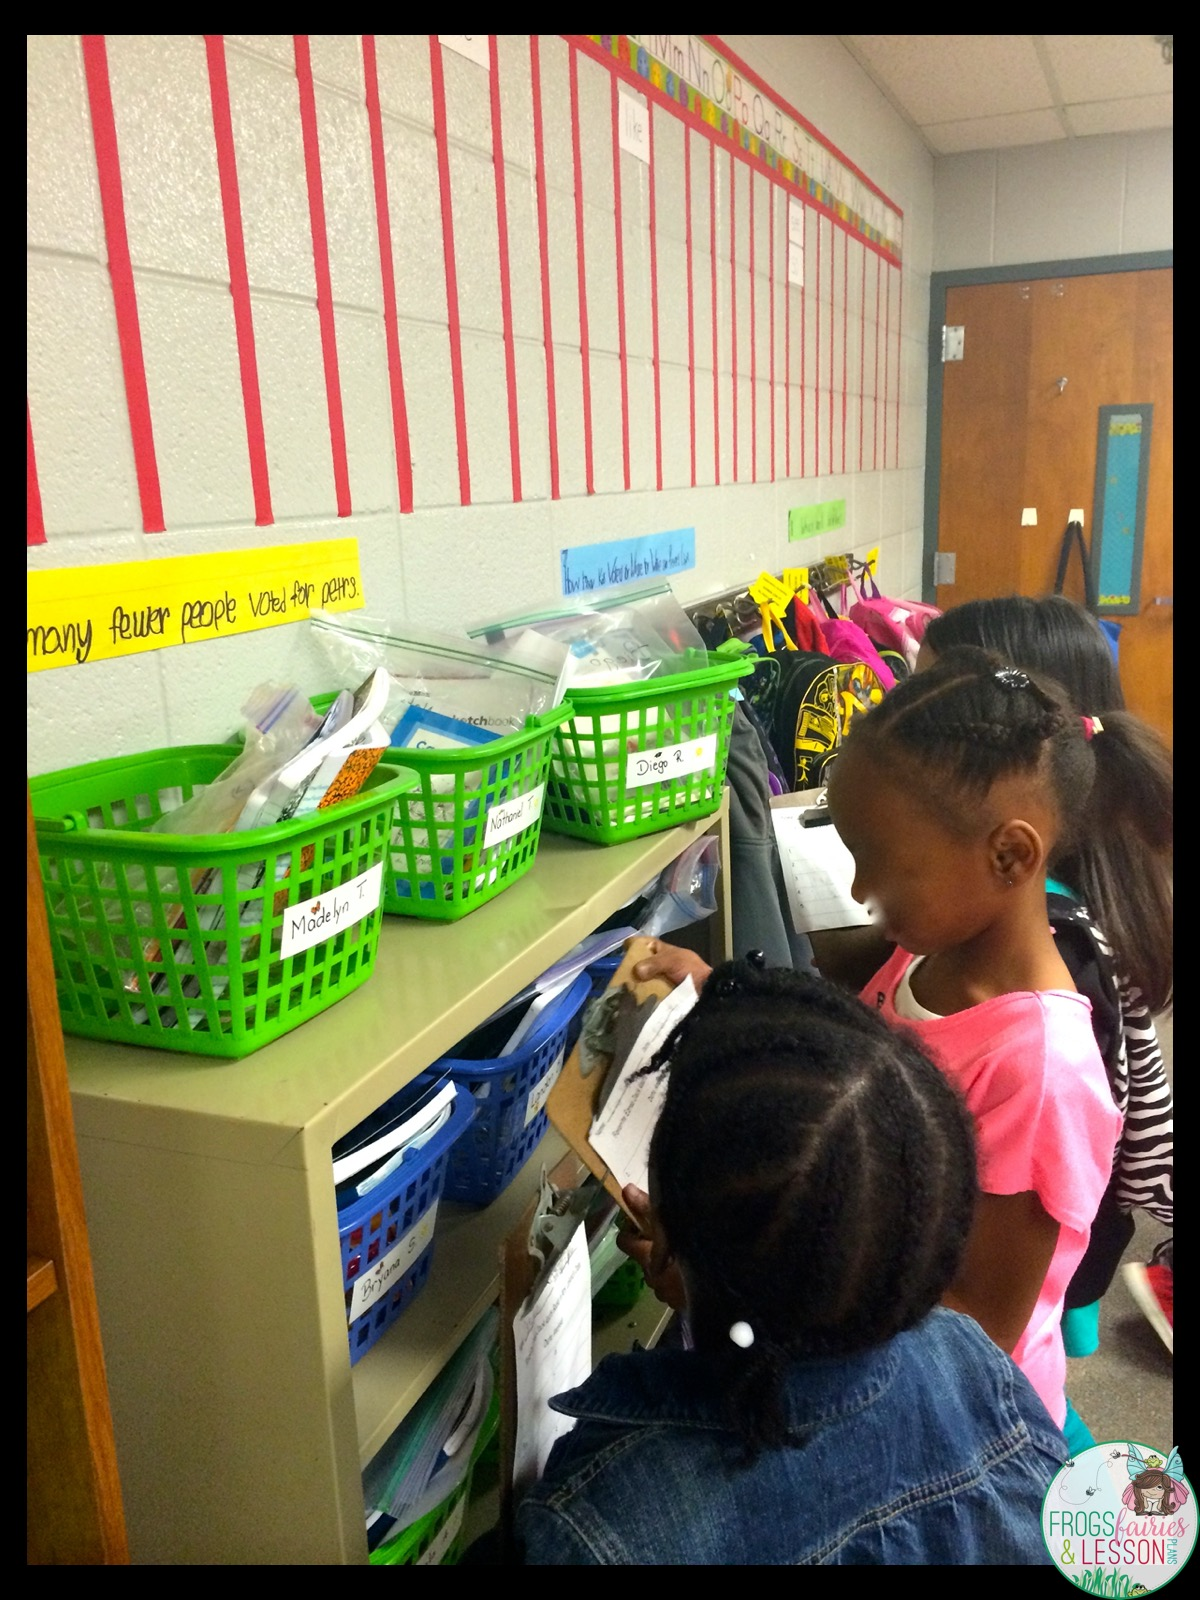 Students walking around the room to read questions on the wall